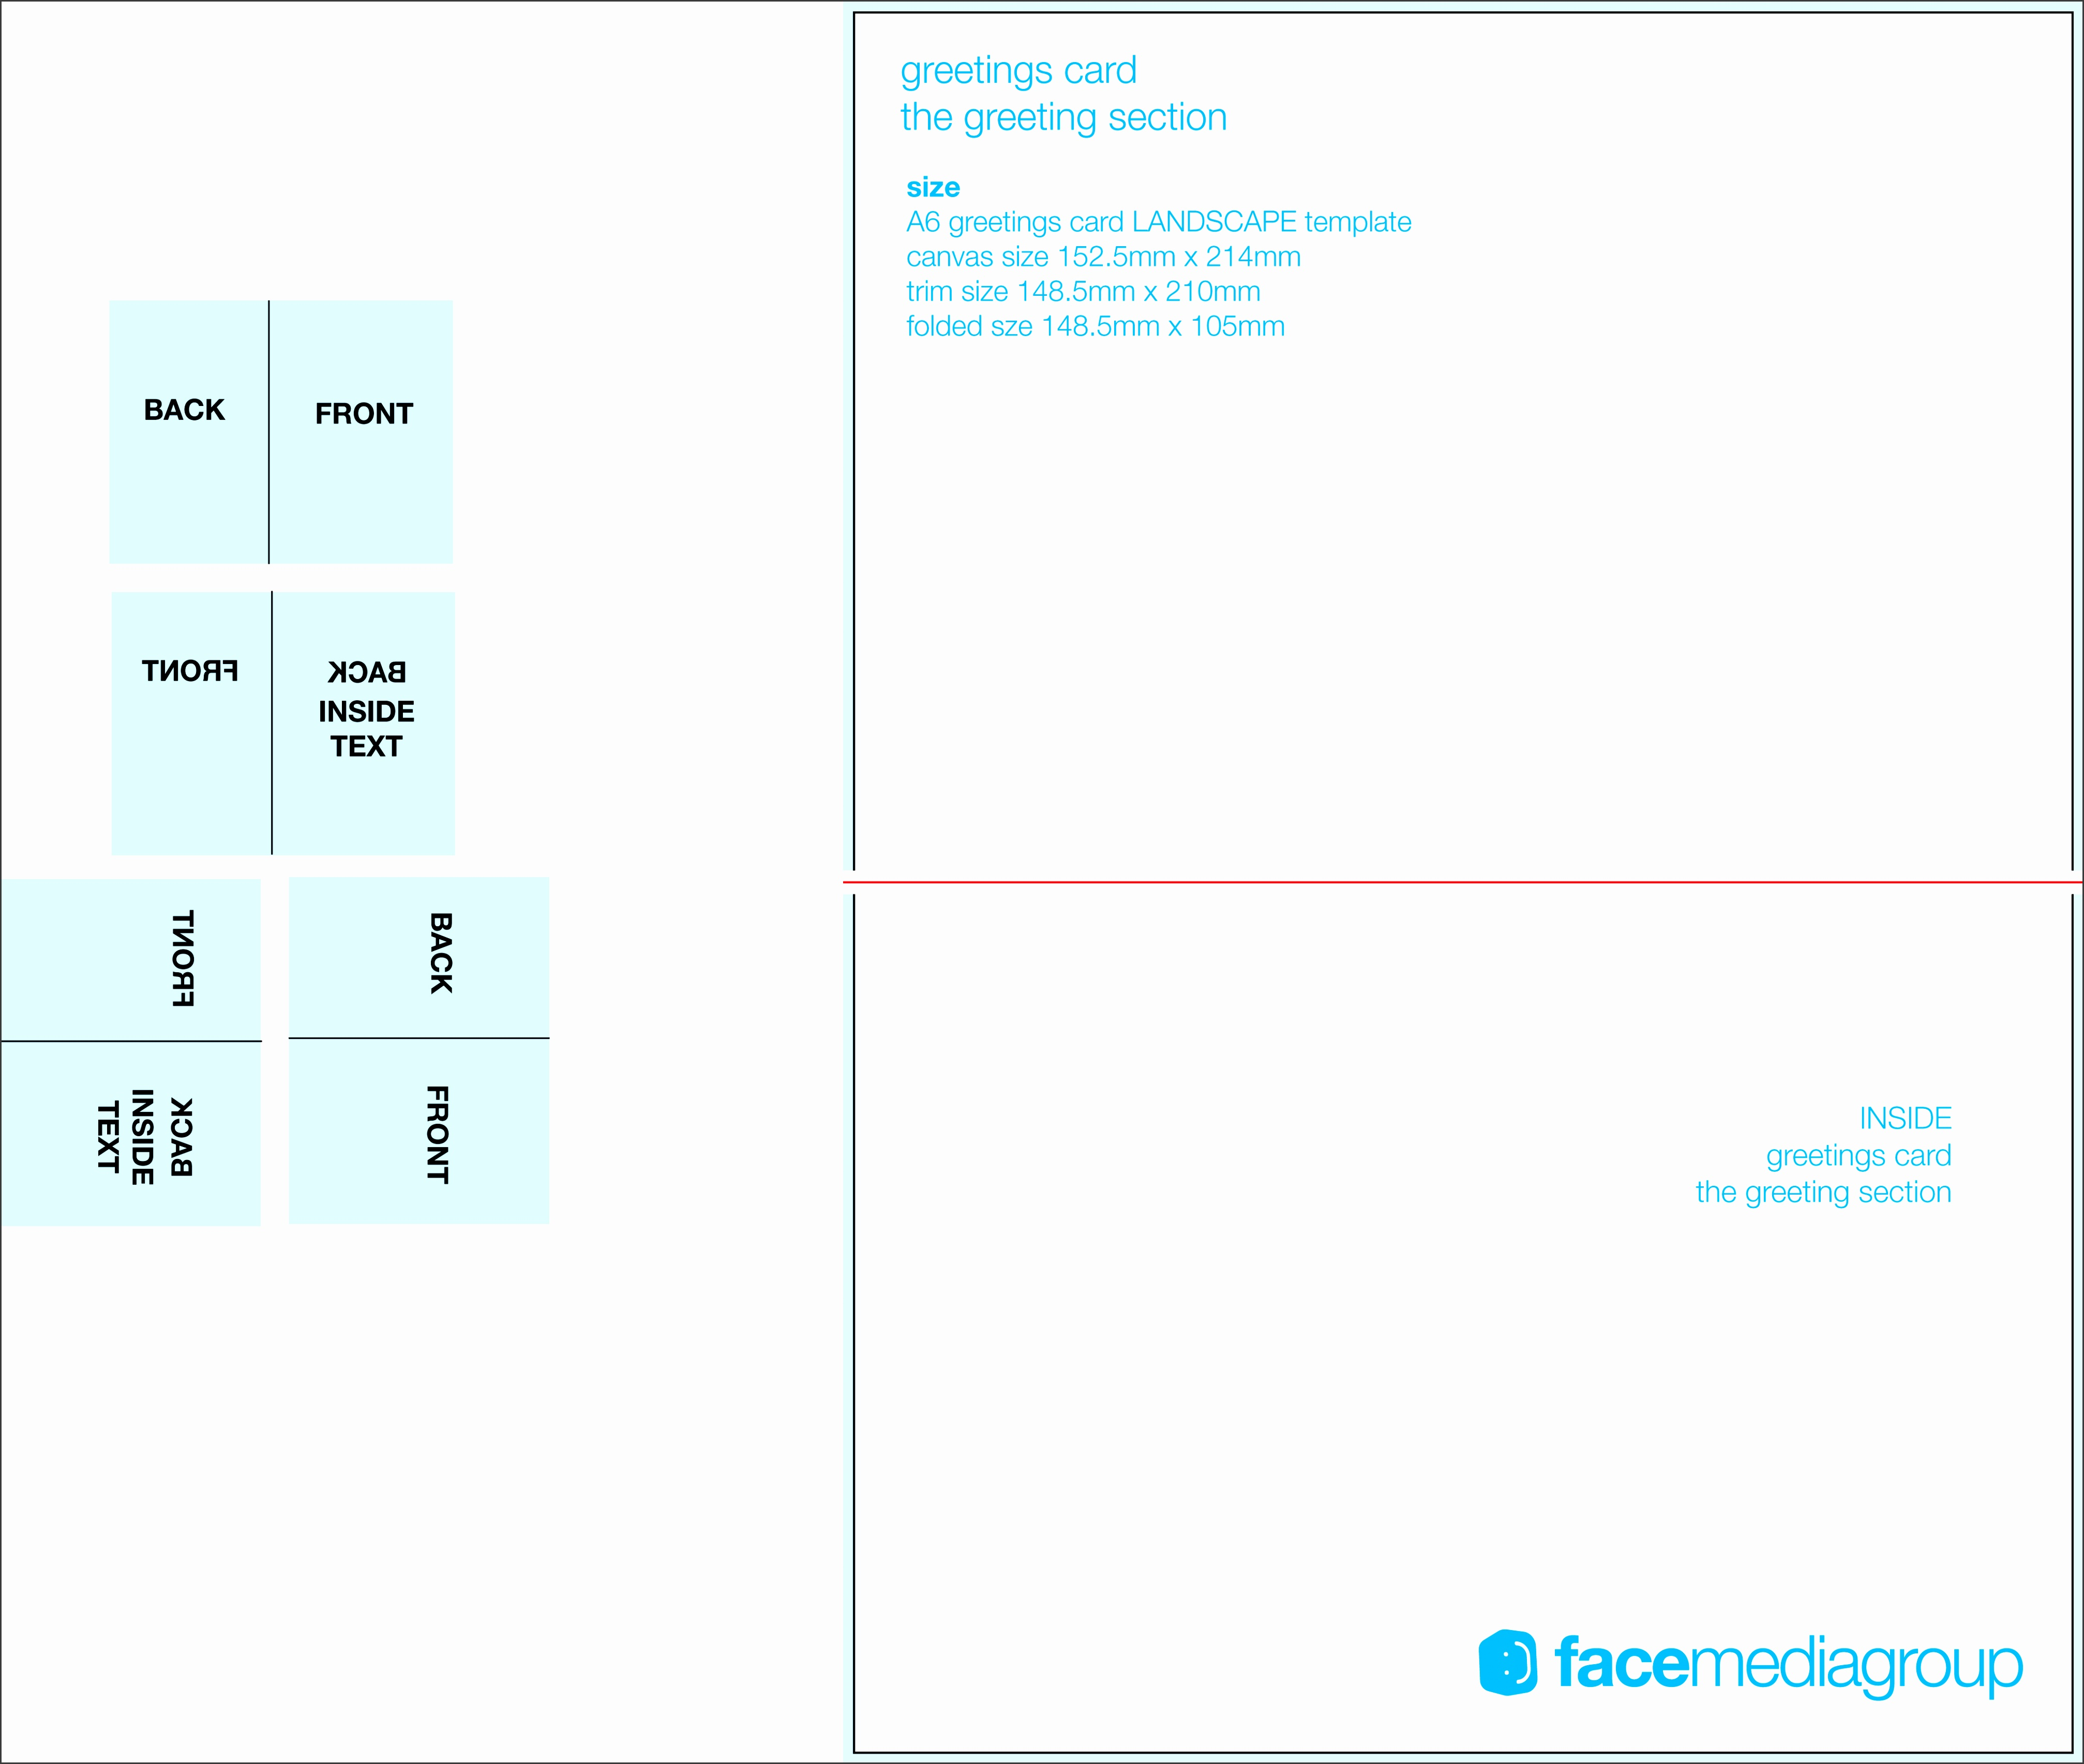 business card layout template cards literarywondrous a6card land in templates free psd format business card layout template cards literarywondrous acard l on create business cards using cool card templates